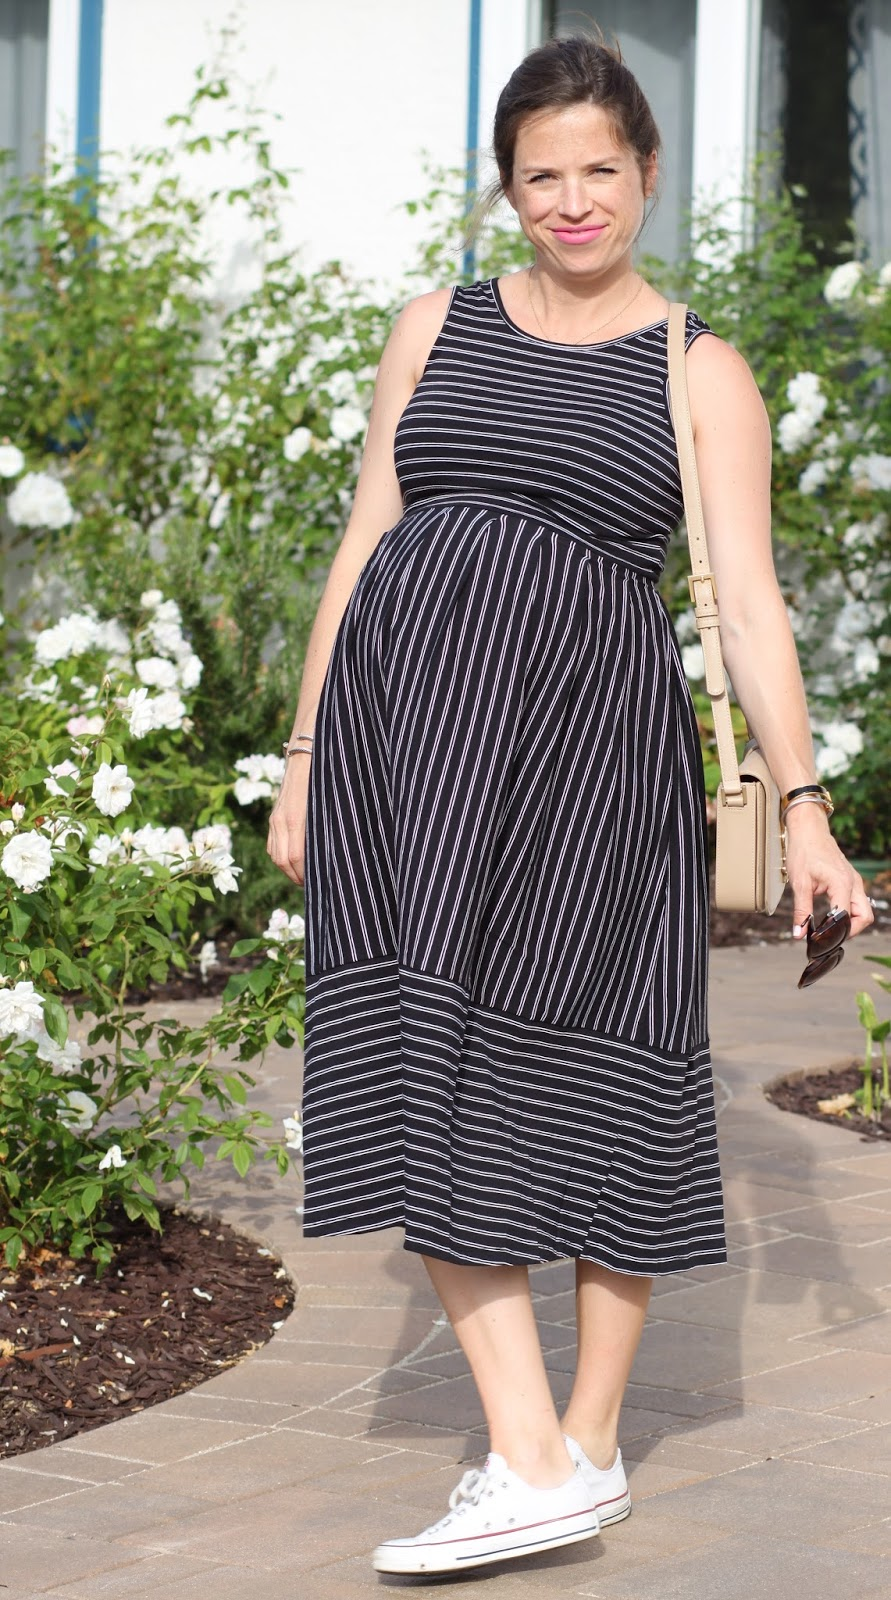 black maternity dress and sneakers